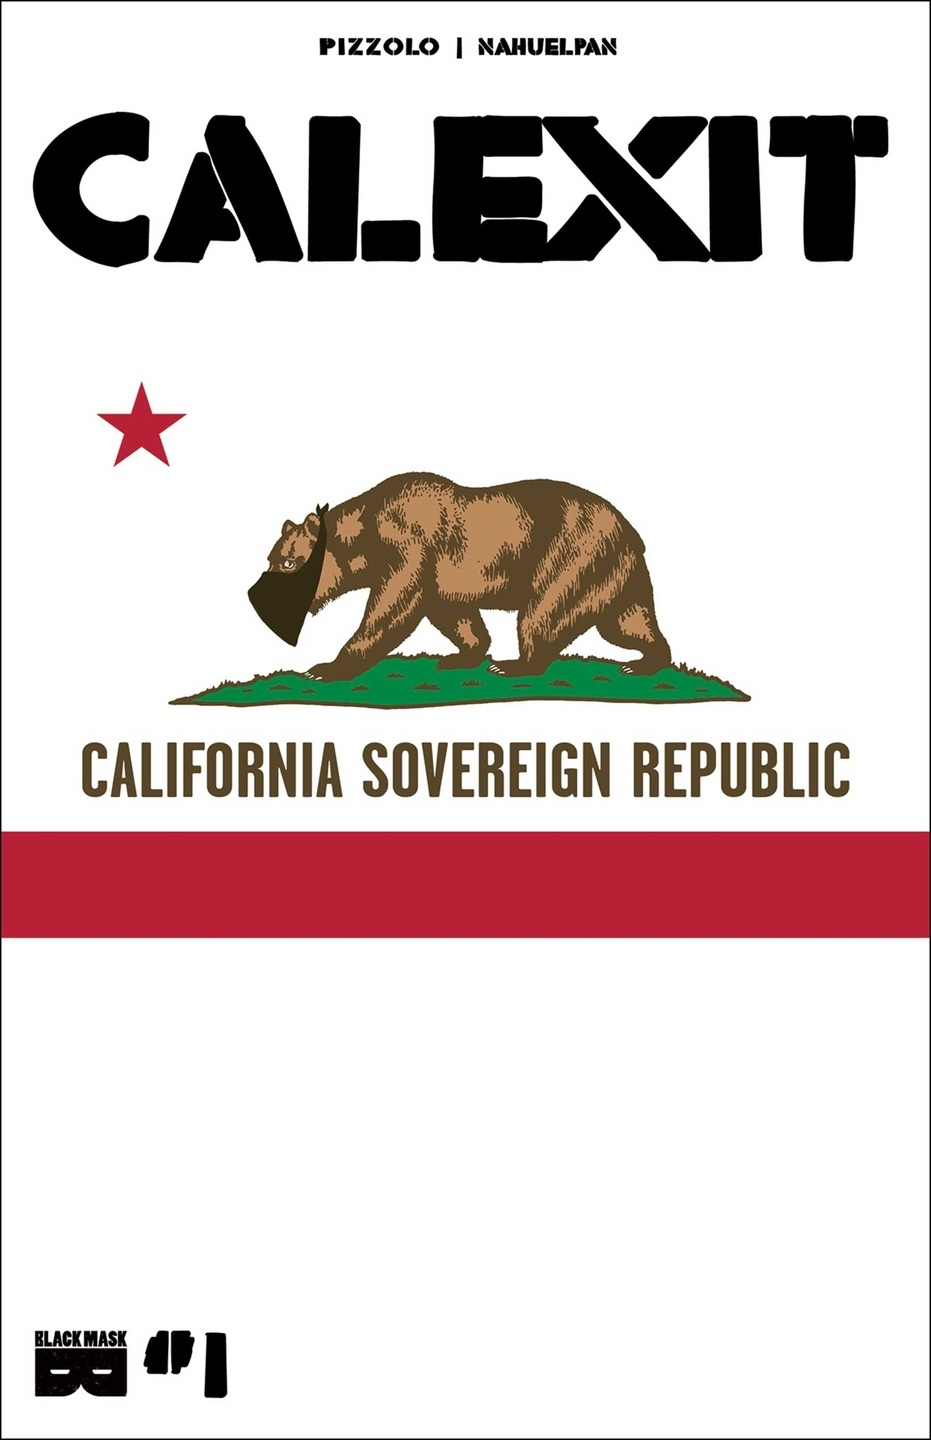 Calexit: a fractured California, where militias and the DHS battle the resistance in Trump's future America